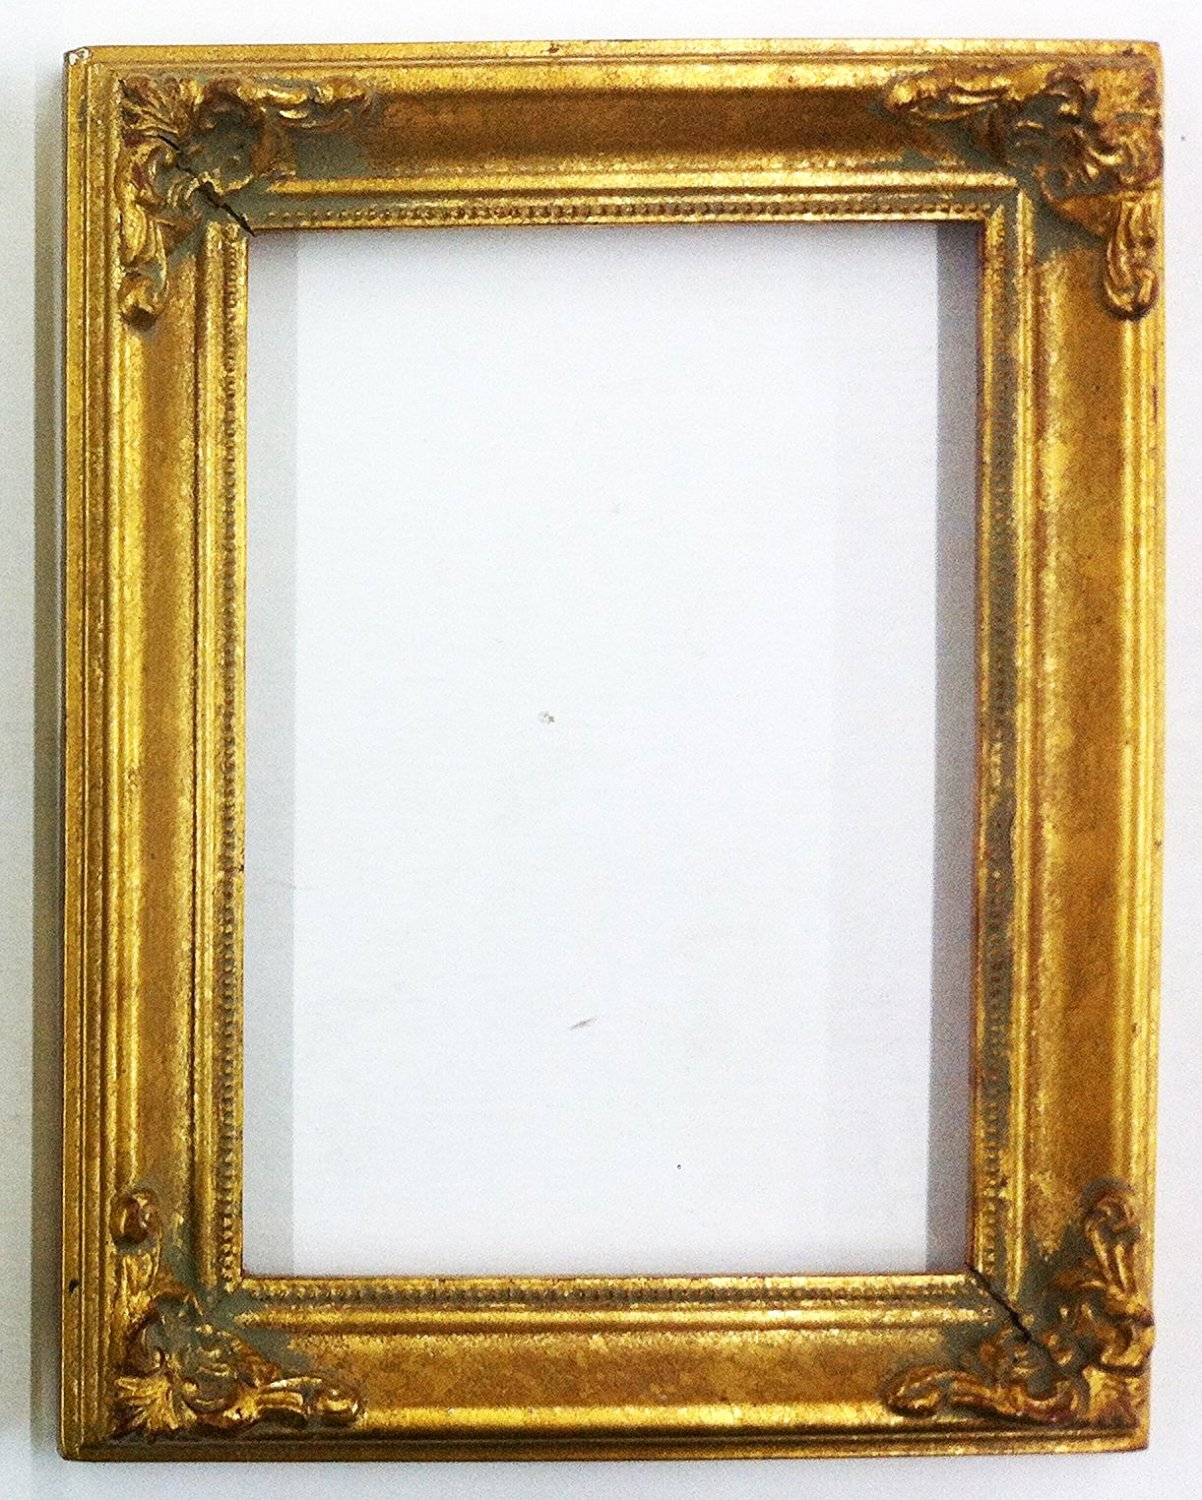 "Vintage Picture Frame Ornate Metallic Baroque Wooden Frames (7"" x 9"") Shabby Chic (Gold)"